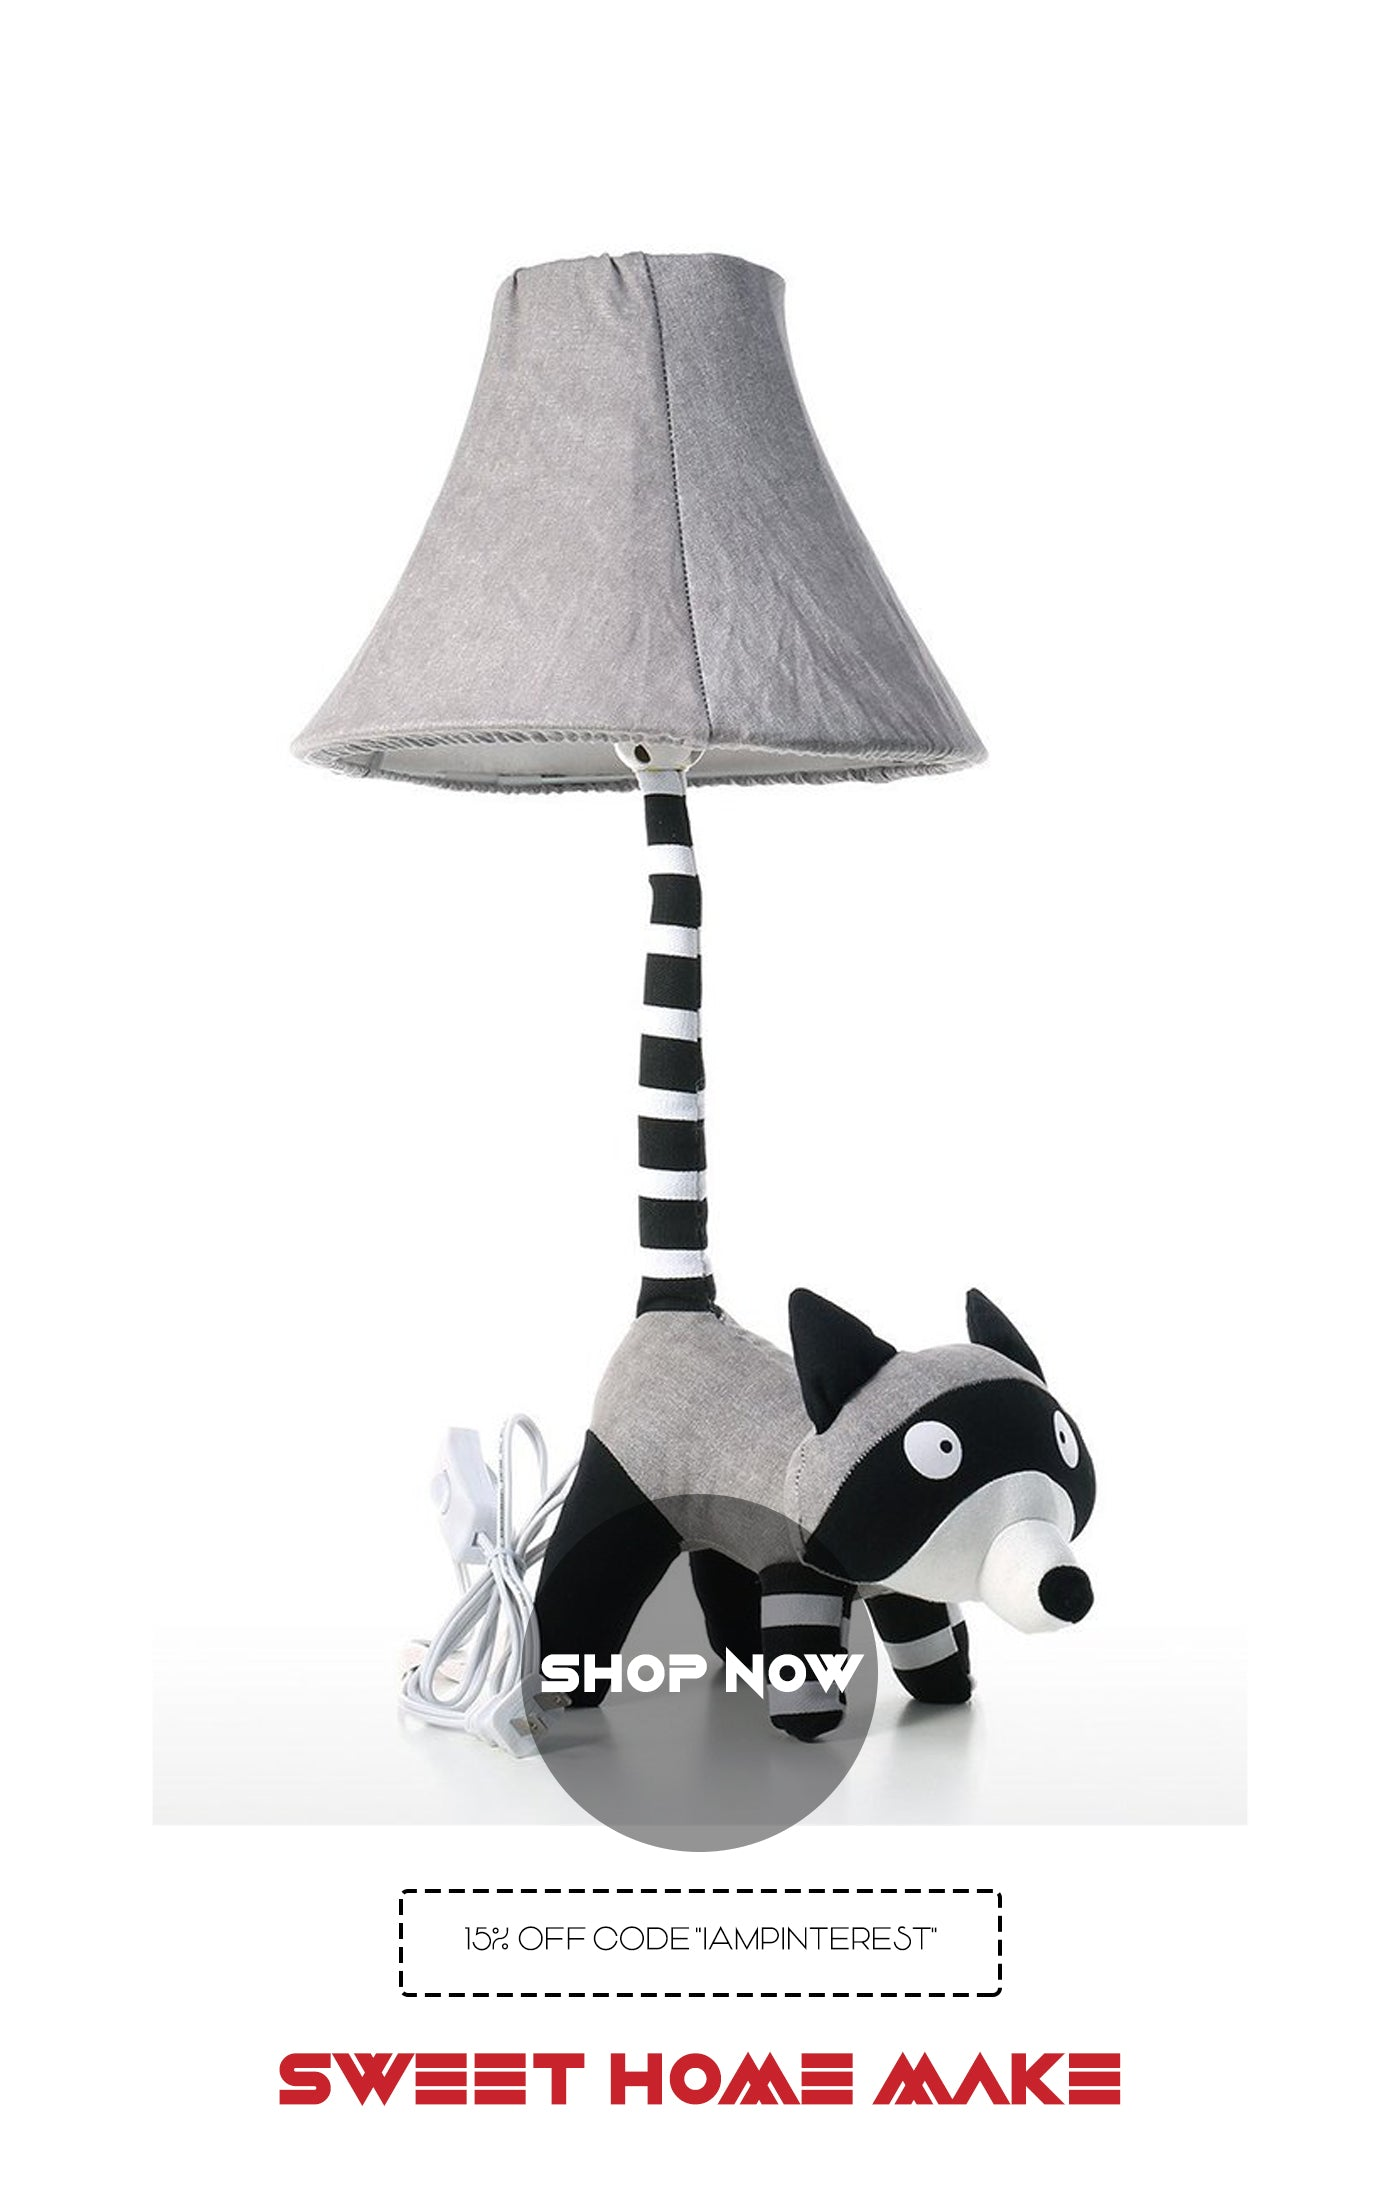 Raccoon Toys For Nursery and Kids as Online Store